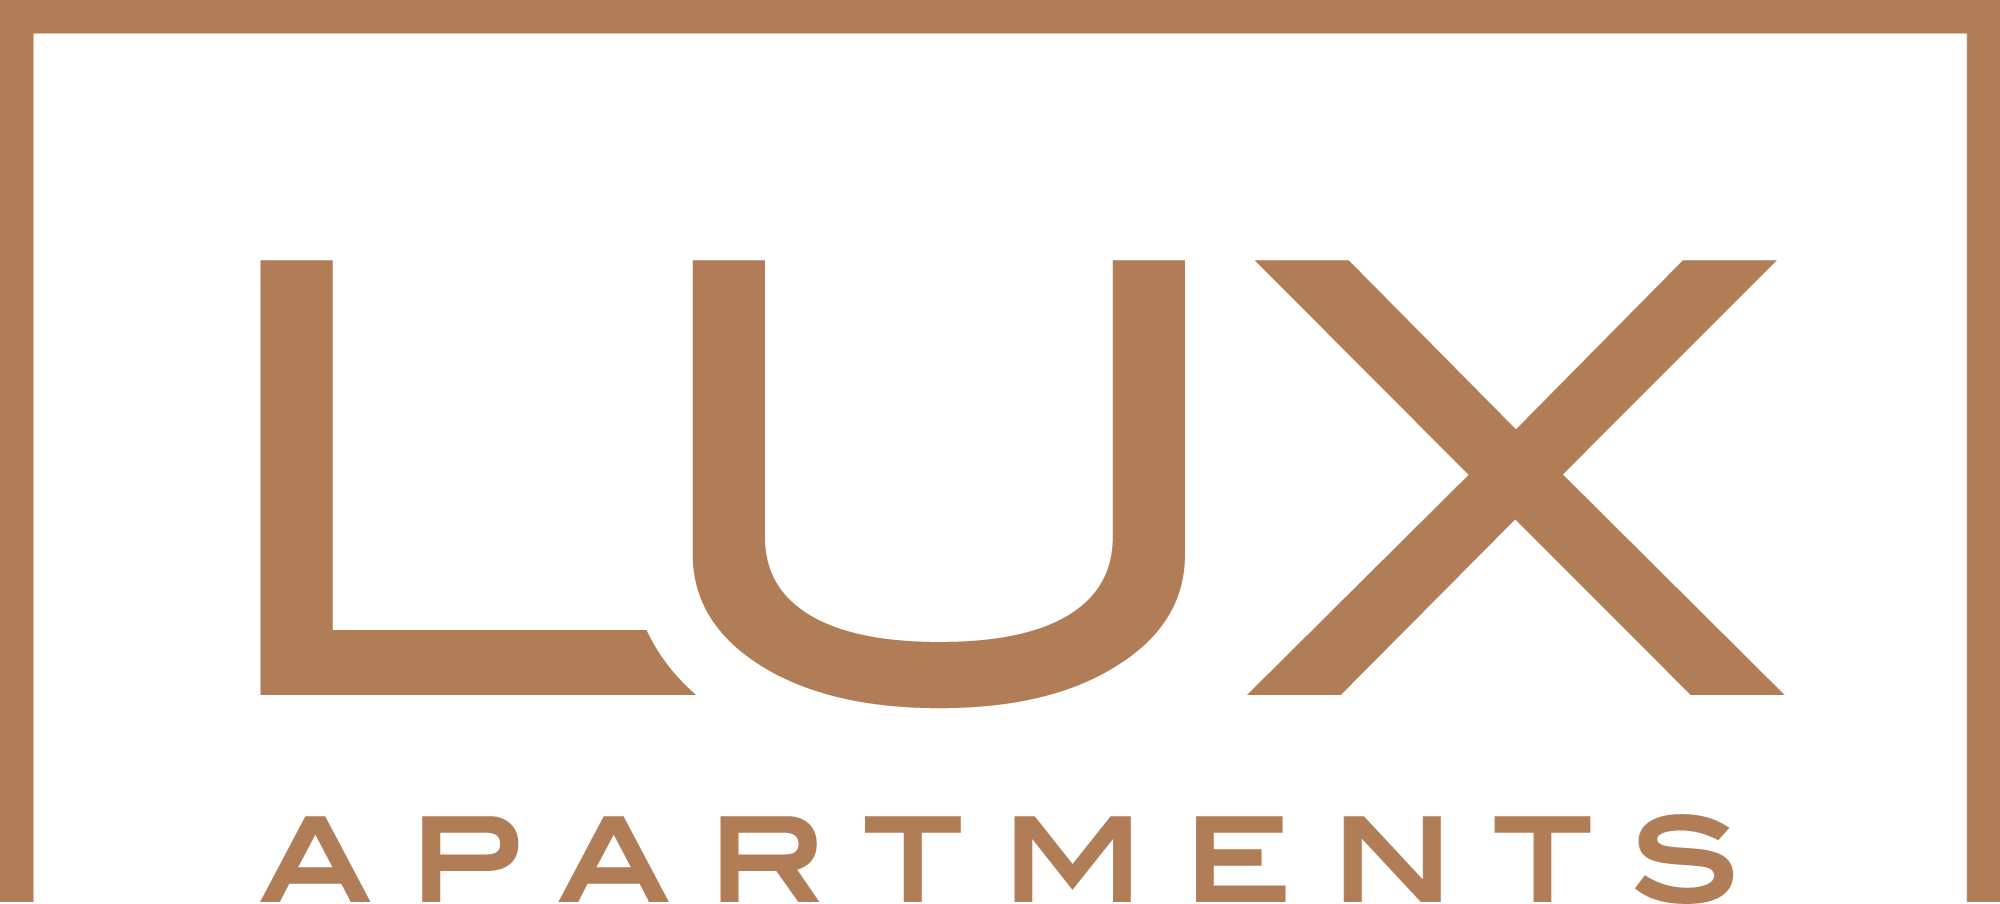 Lux Apartments_Bellevue WA_Logos